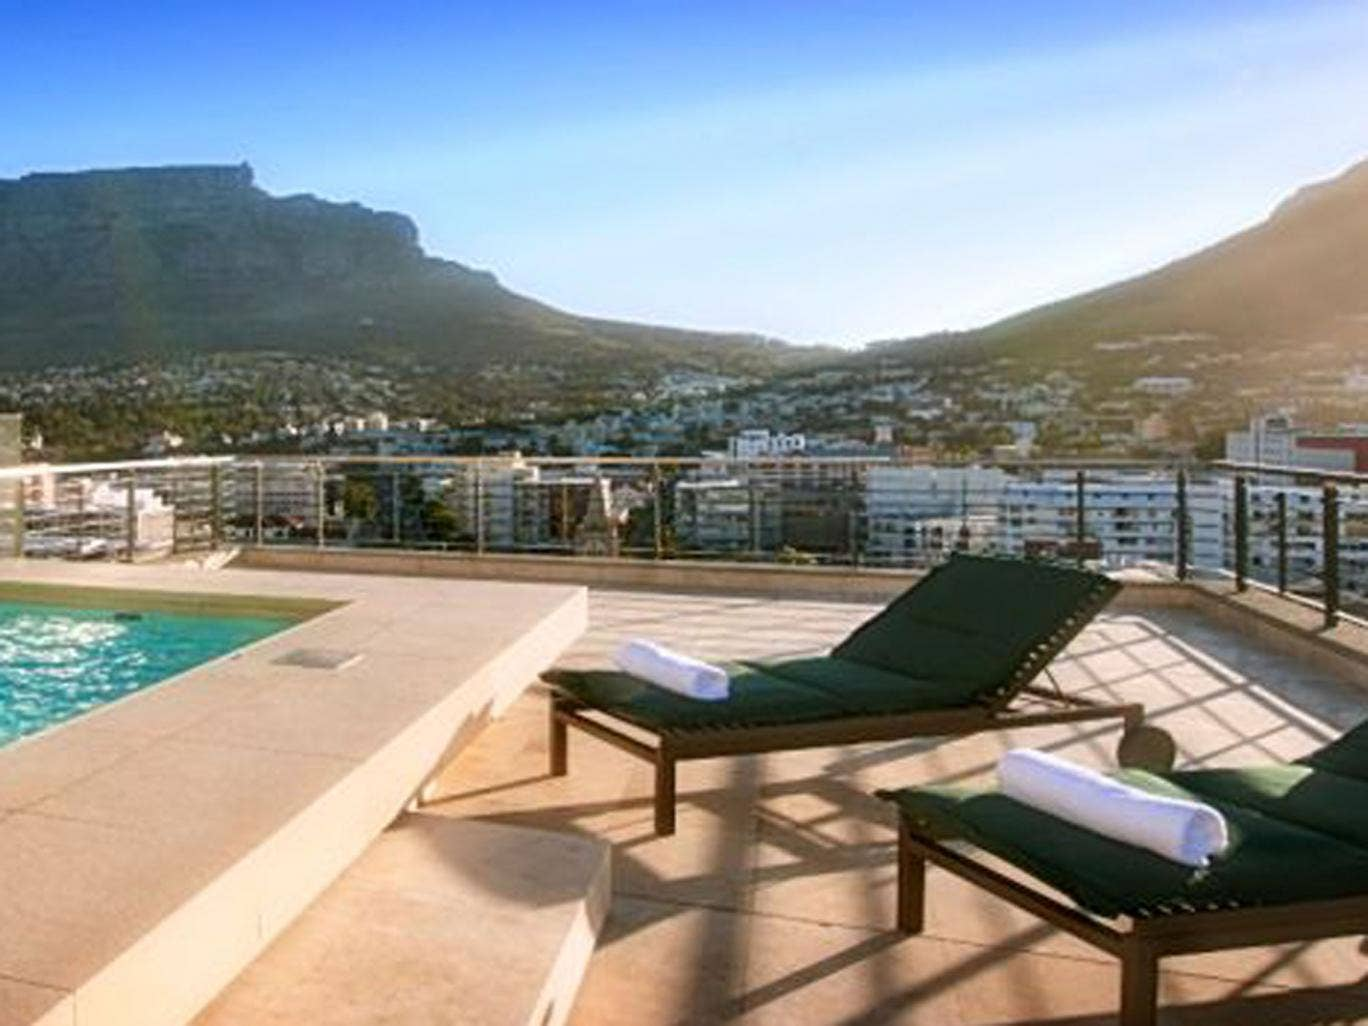 Viewpoint: Pepper Club Hotel, Cape Town